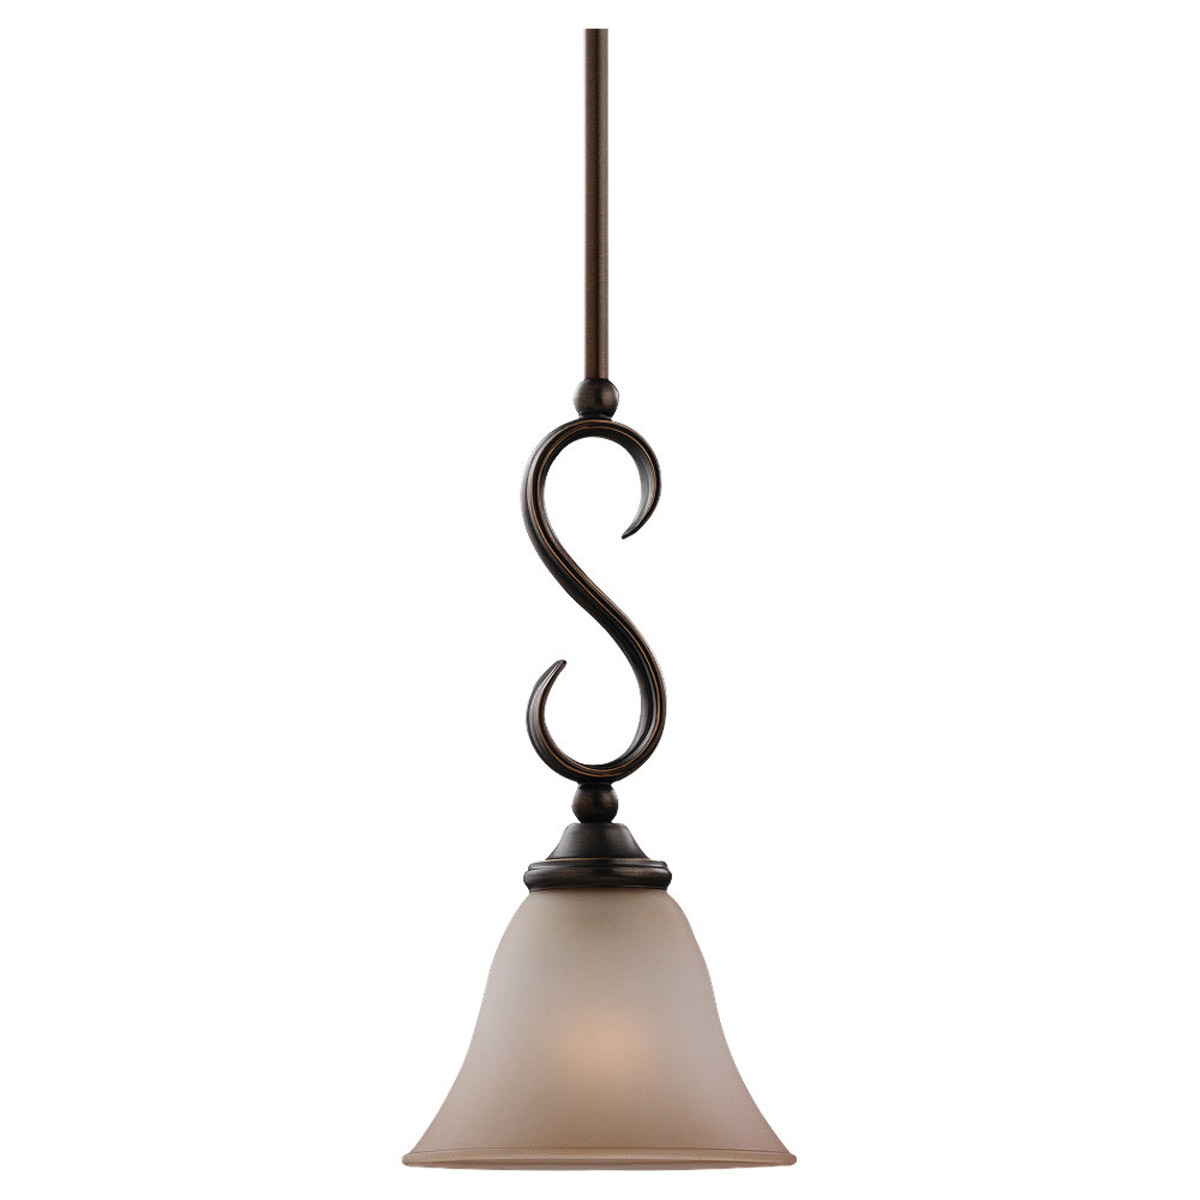 Sea Gull Lighting Rialto 1 Light Mini Pendant in Russet Bronze 61360-829